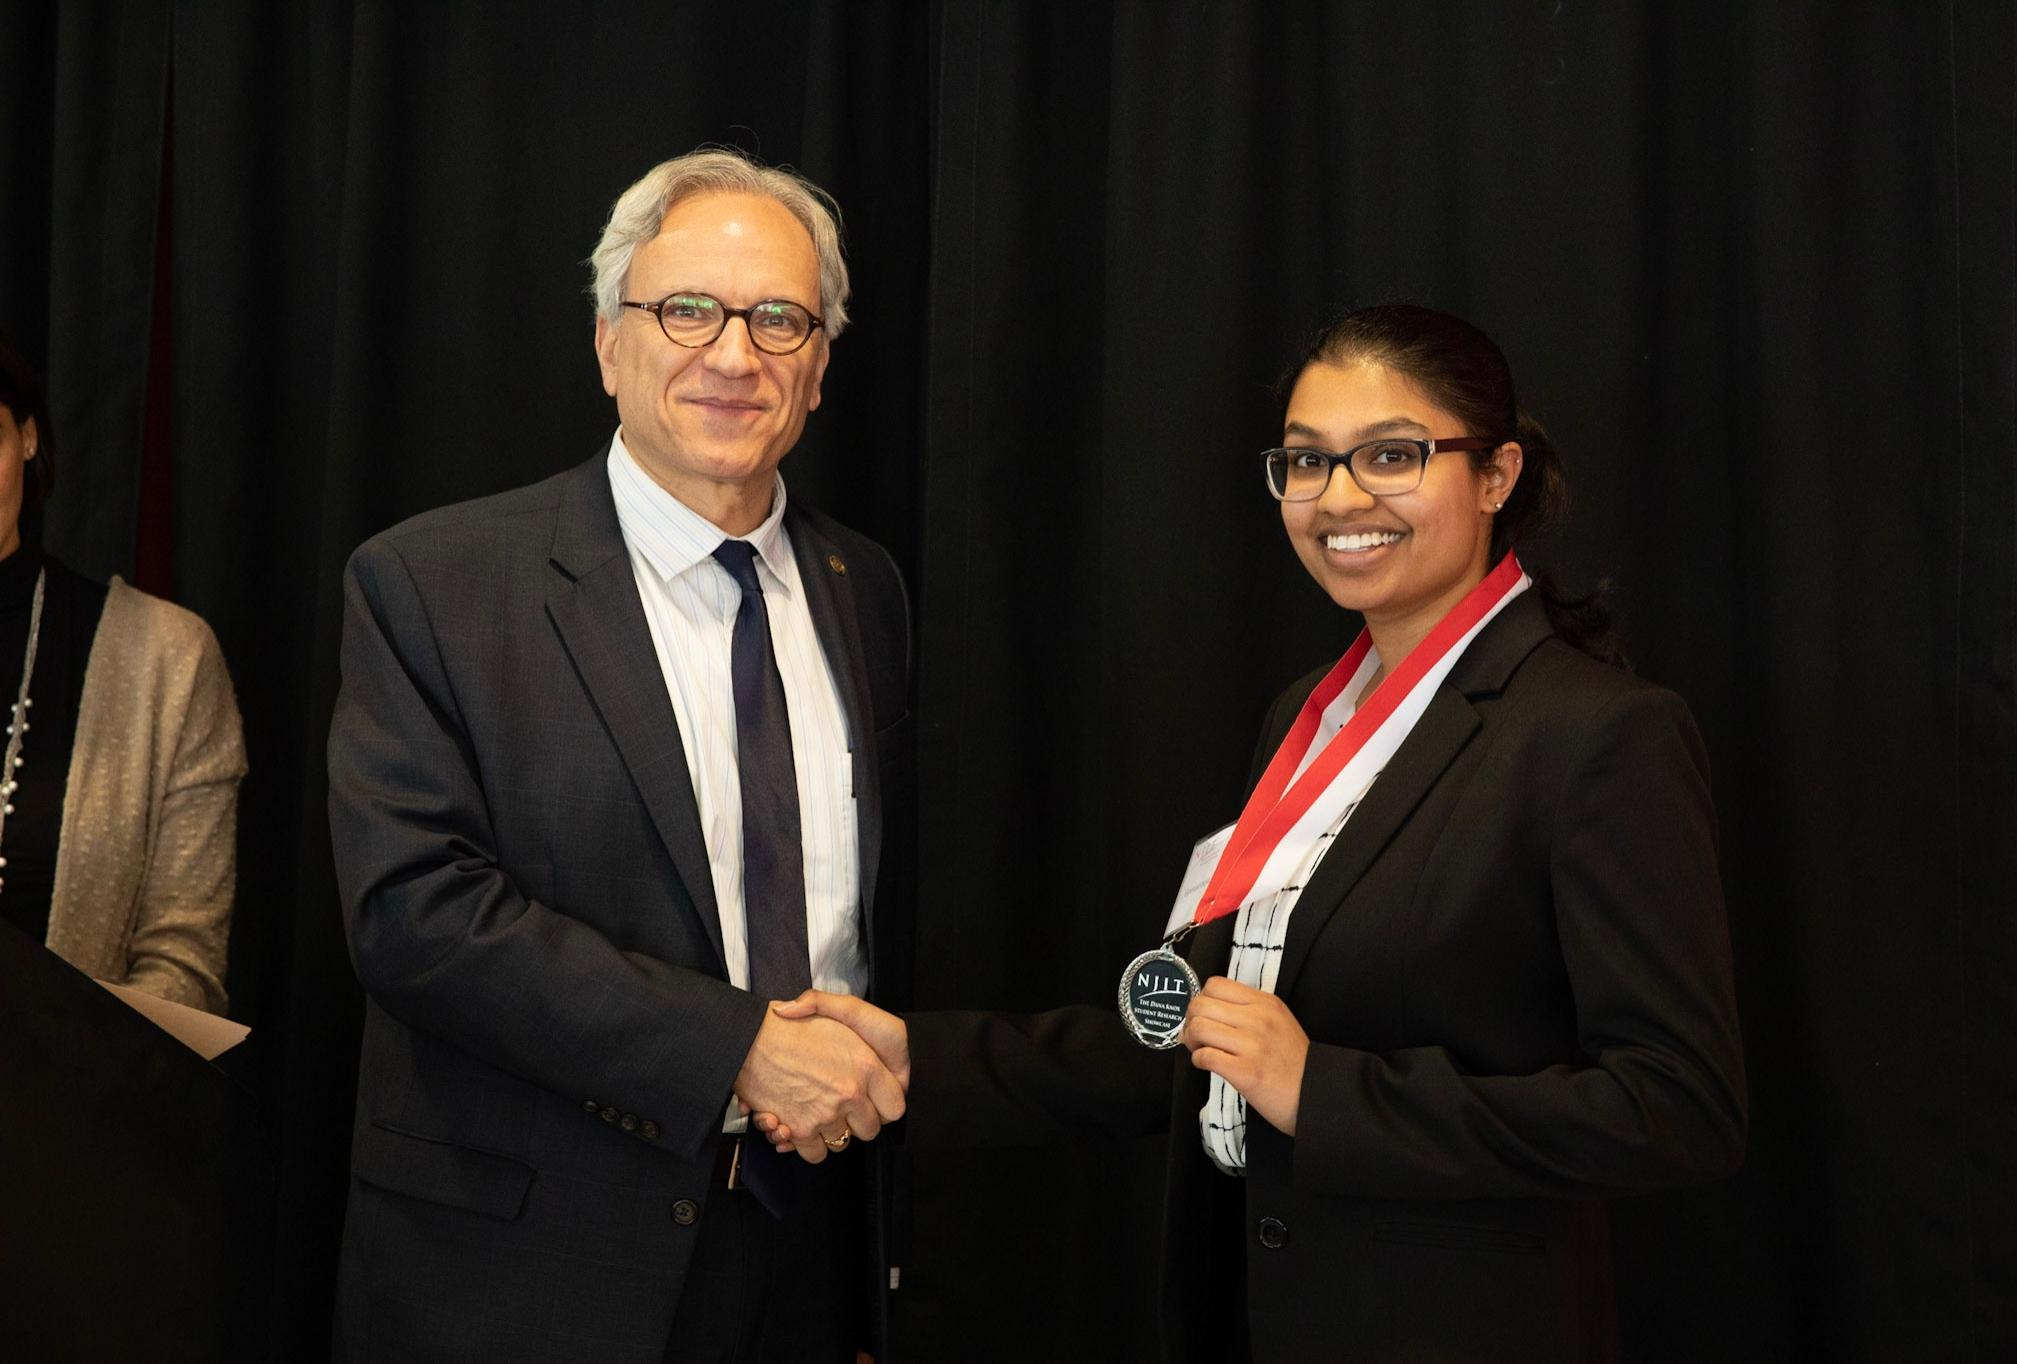 Biology sophomore and student at Albert Dorman Honors College, Geetasravya Vegunta, collects her award alongside NJIT Provost Fadi P. Deek.